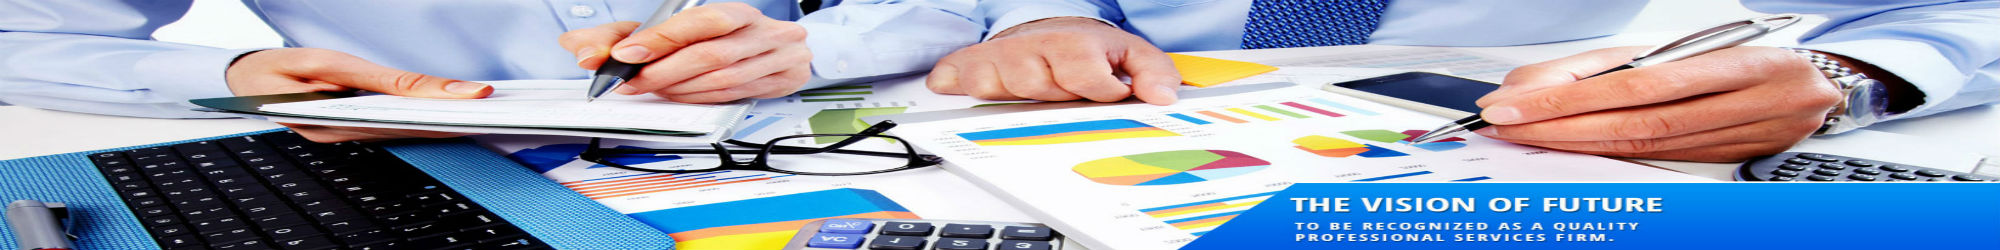 accounting_bookkeeping_taxreturn_financial